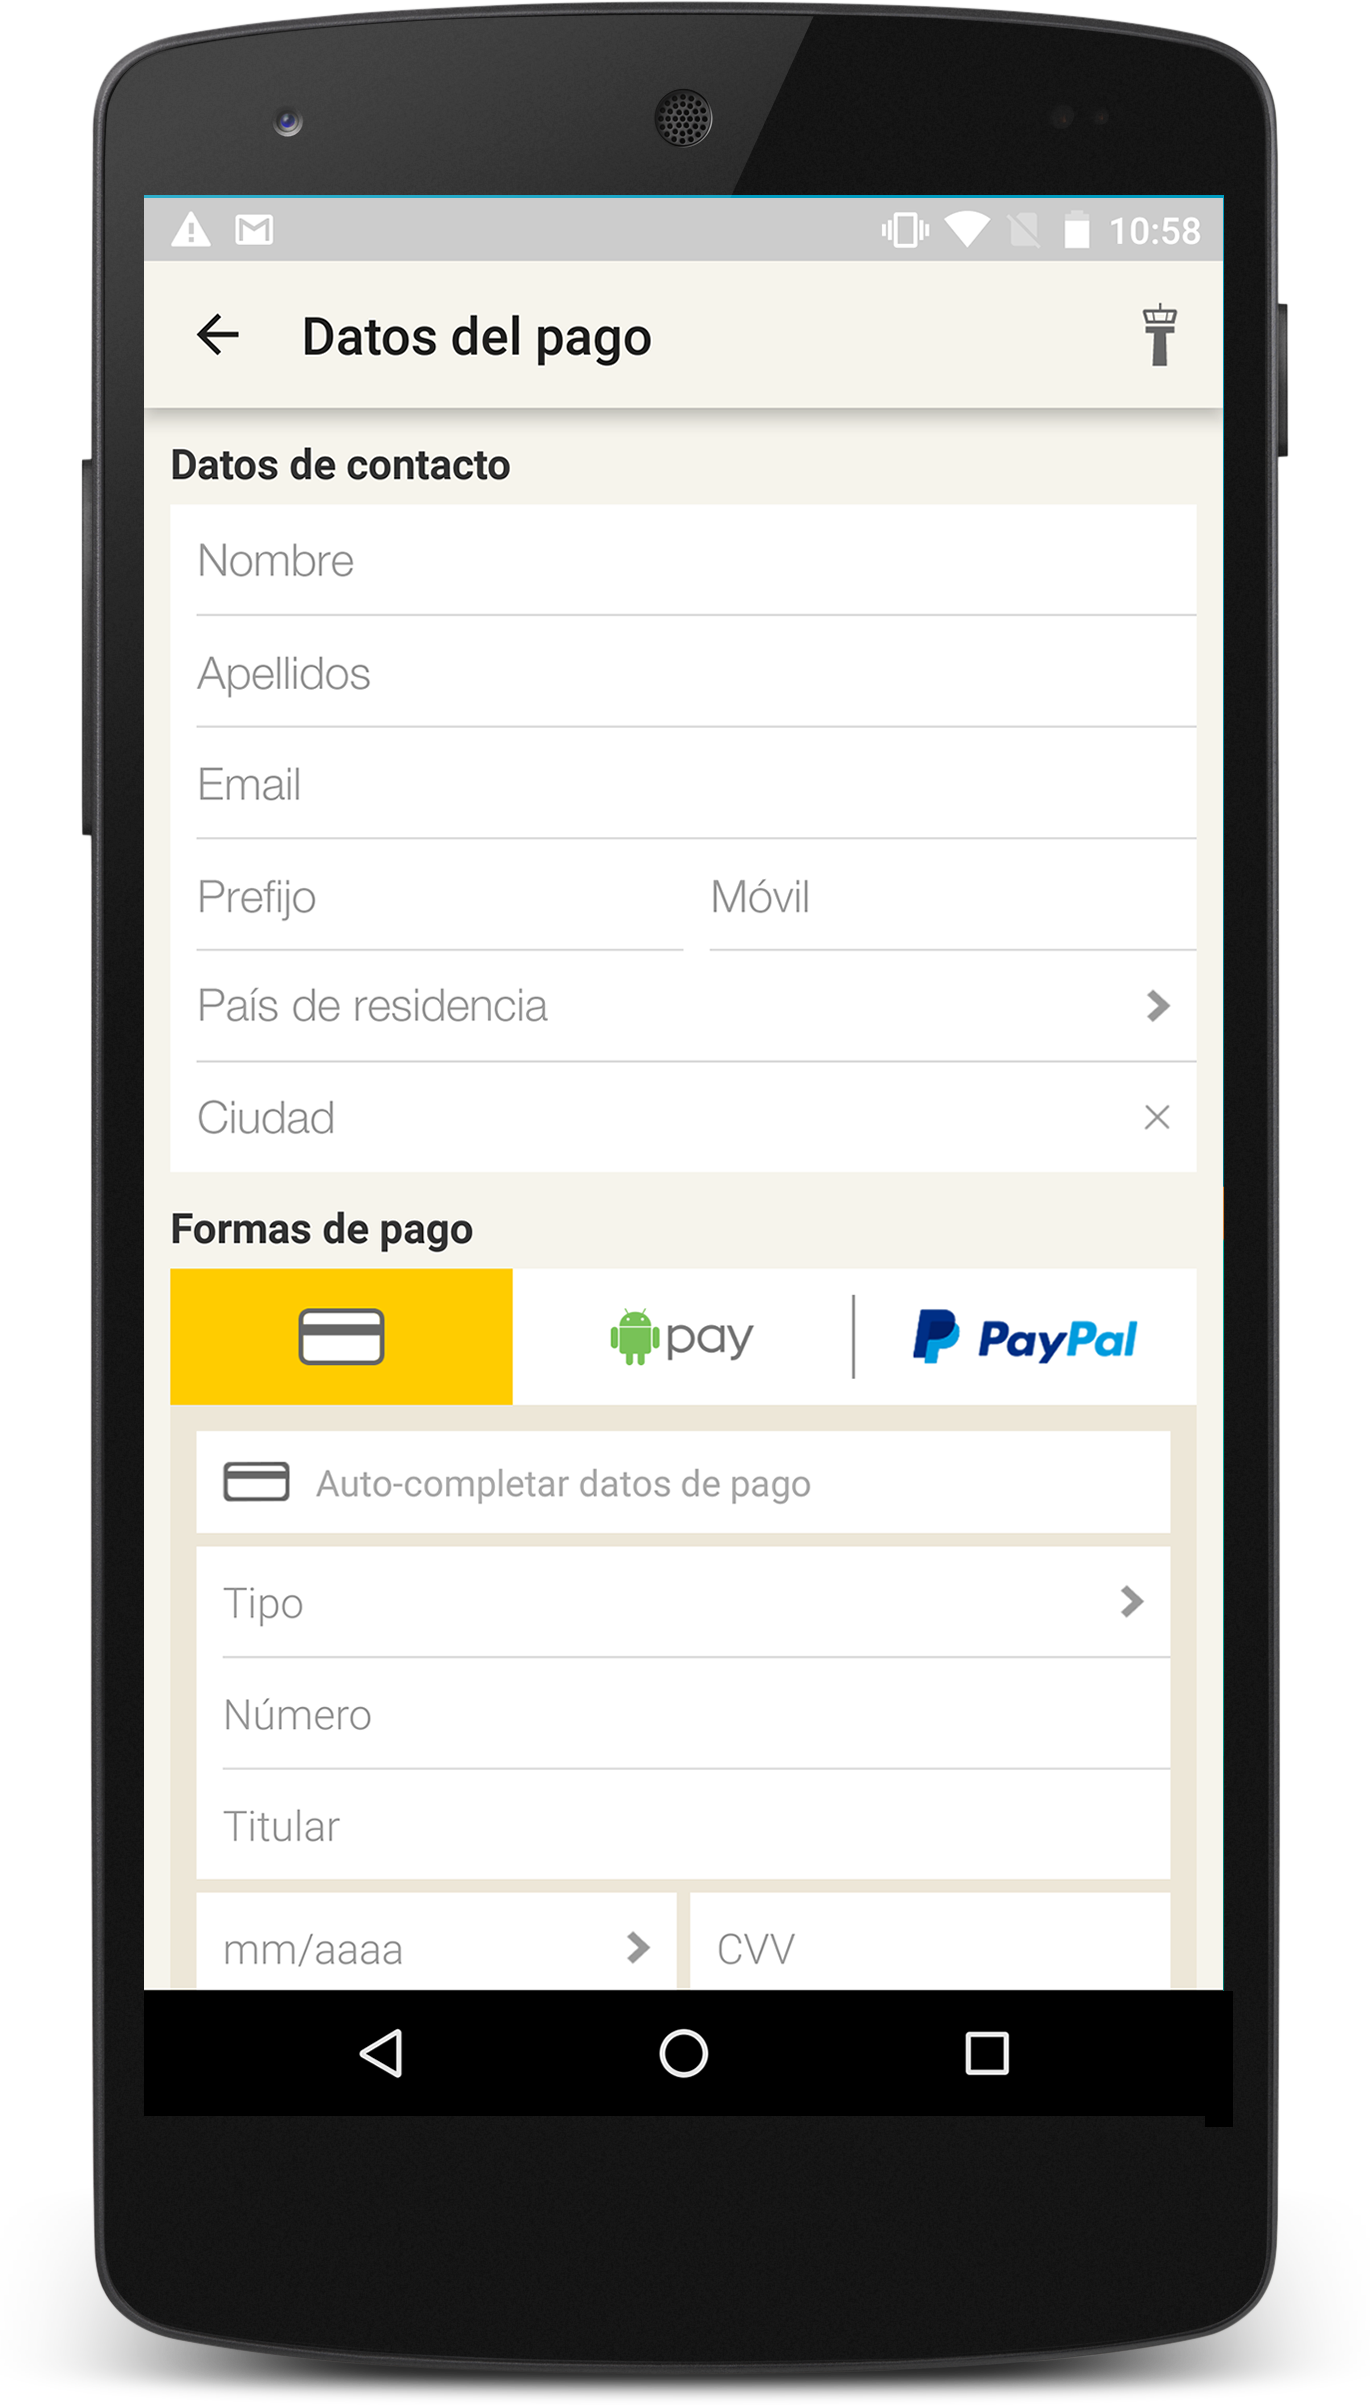 [Imagen] AndroidPay_Vueling